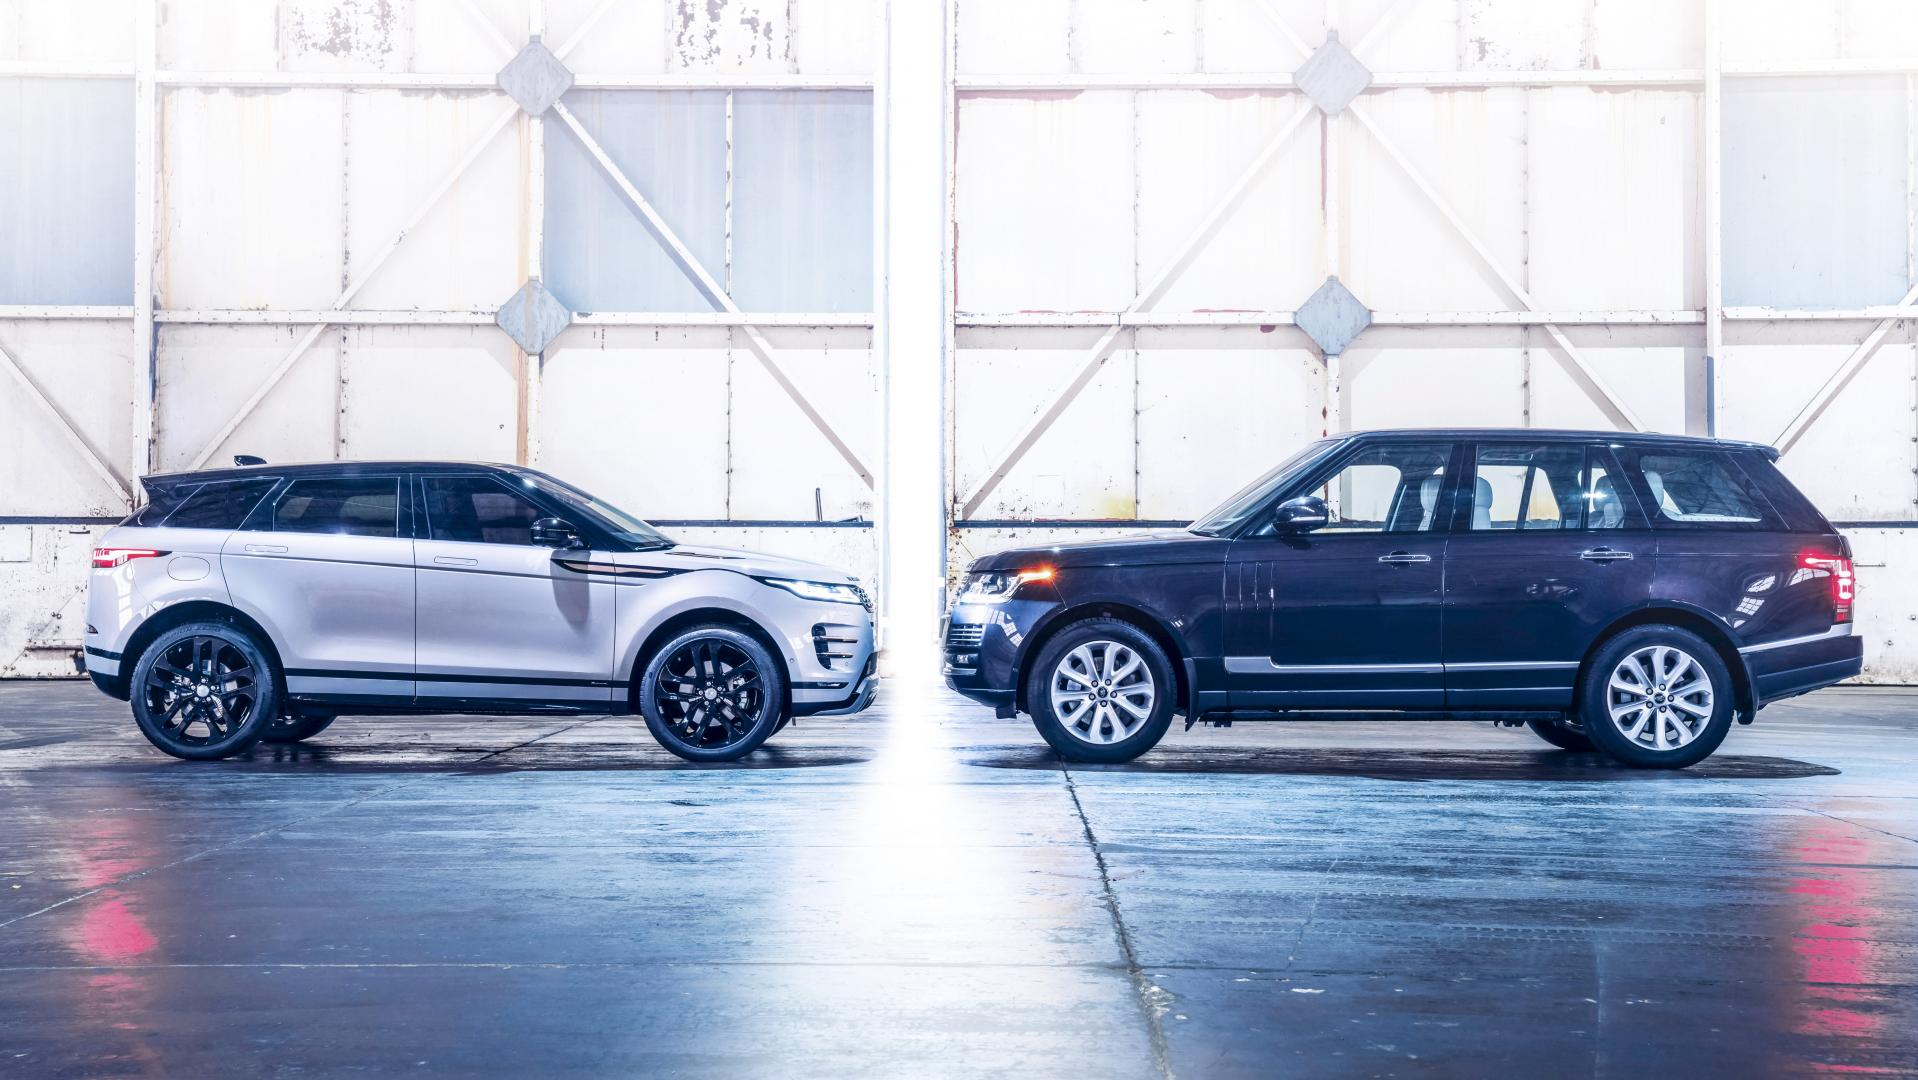 Range Rover Vogue / Evoque